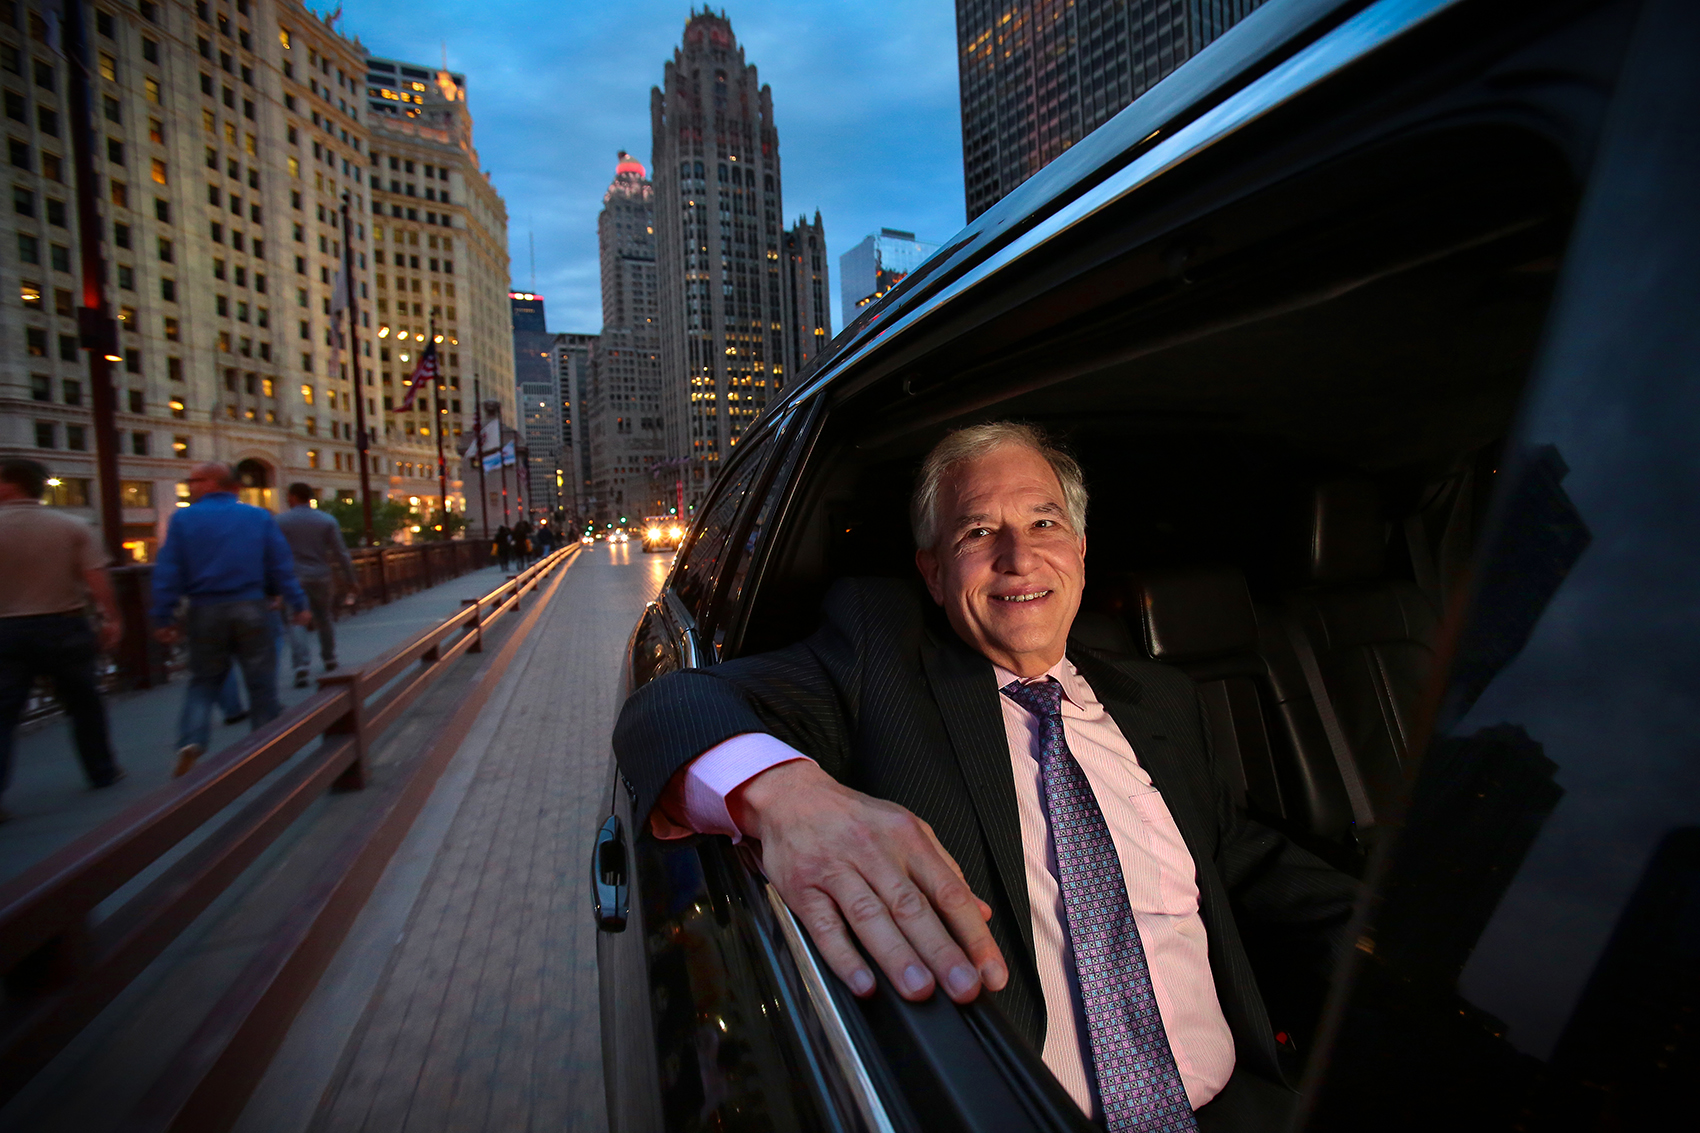 <p>George Jacobs, CEO of Windy City Limosine, poses for a photo in Downtown Chicago, on May 19, 2014. Manuel Martinez/Crain's Chicago Business</p>